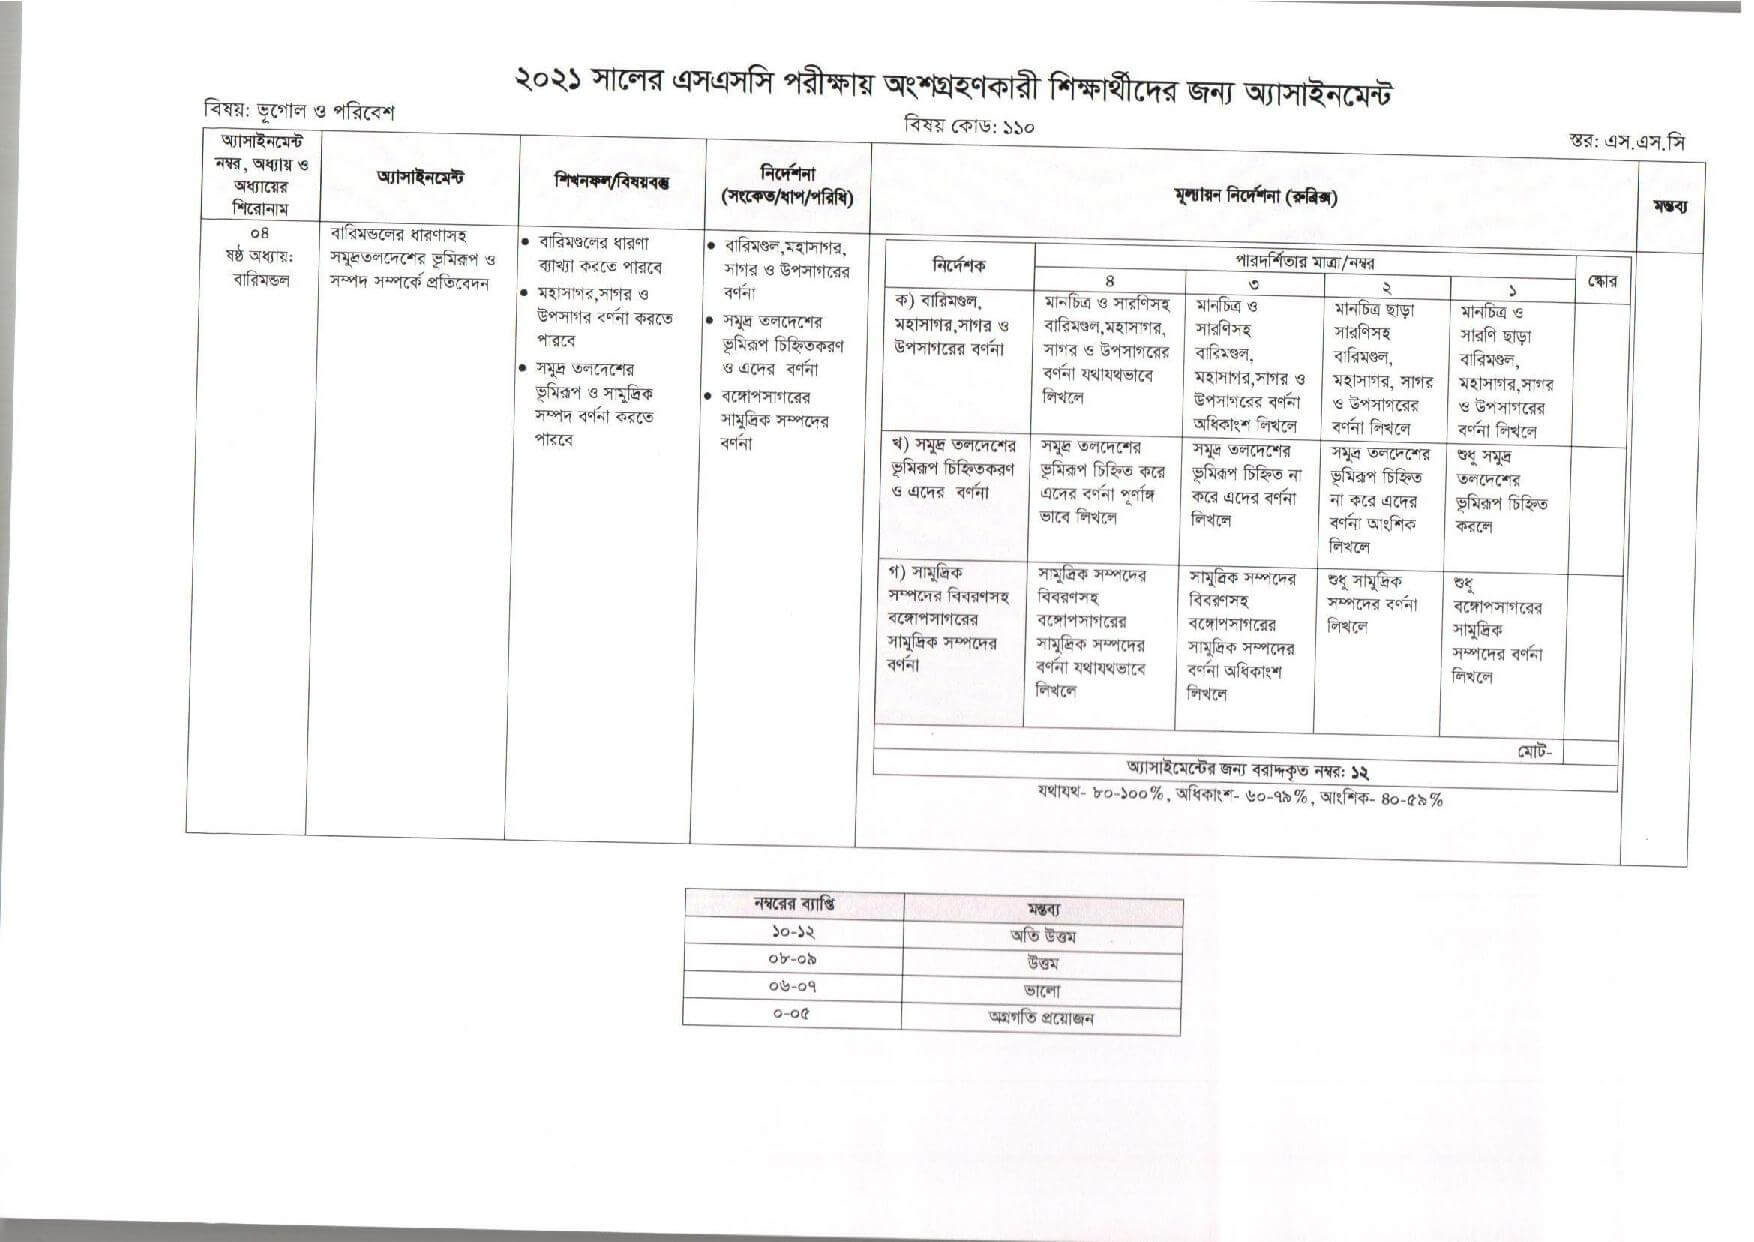 SSC Geography Assignment Answer 2022 6th Week